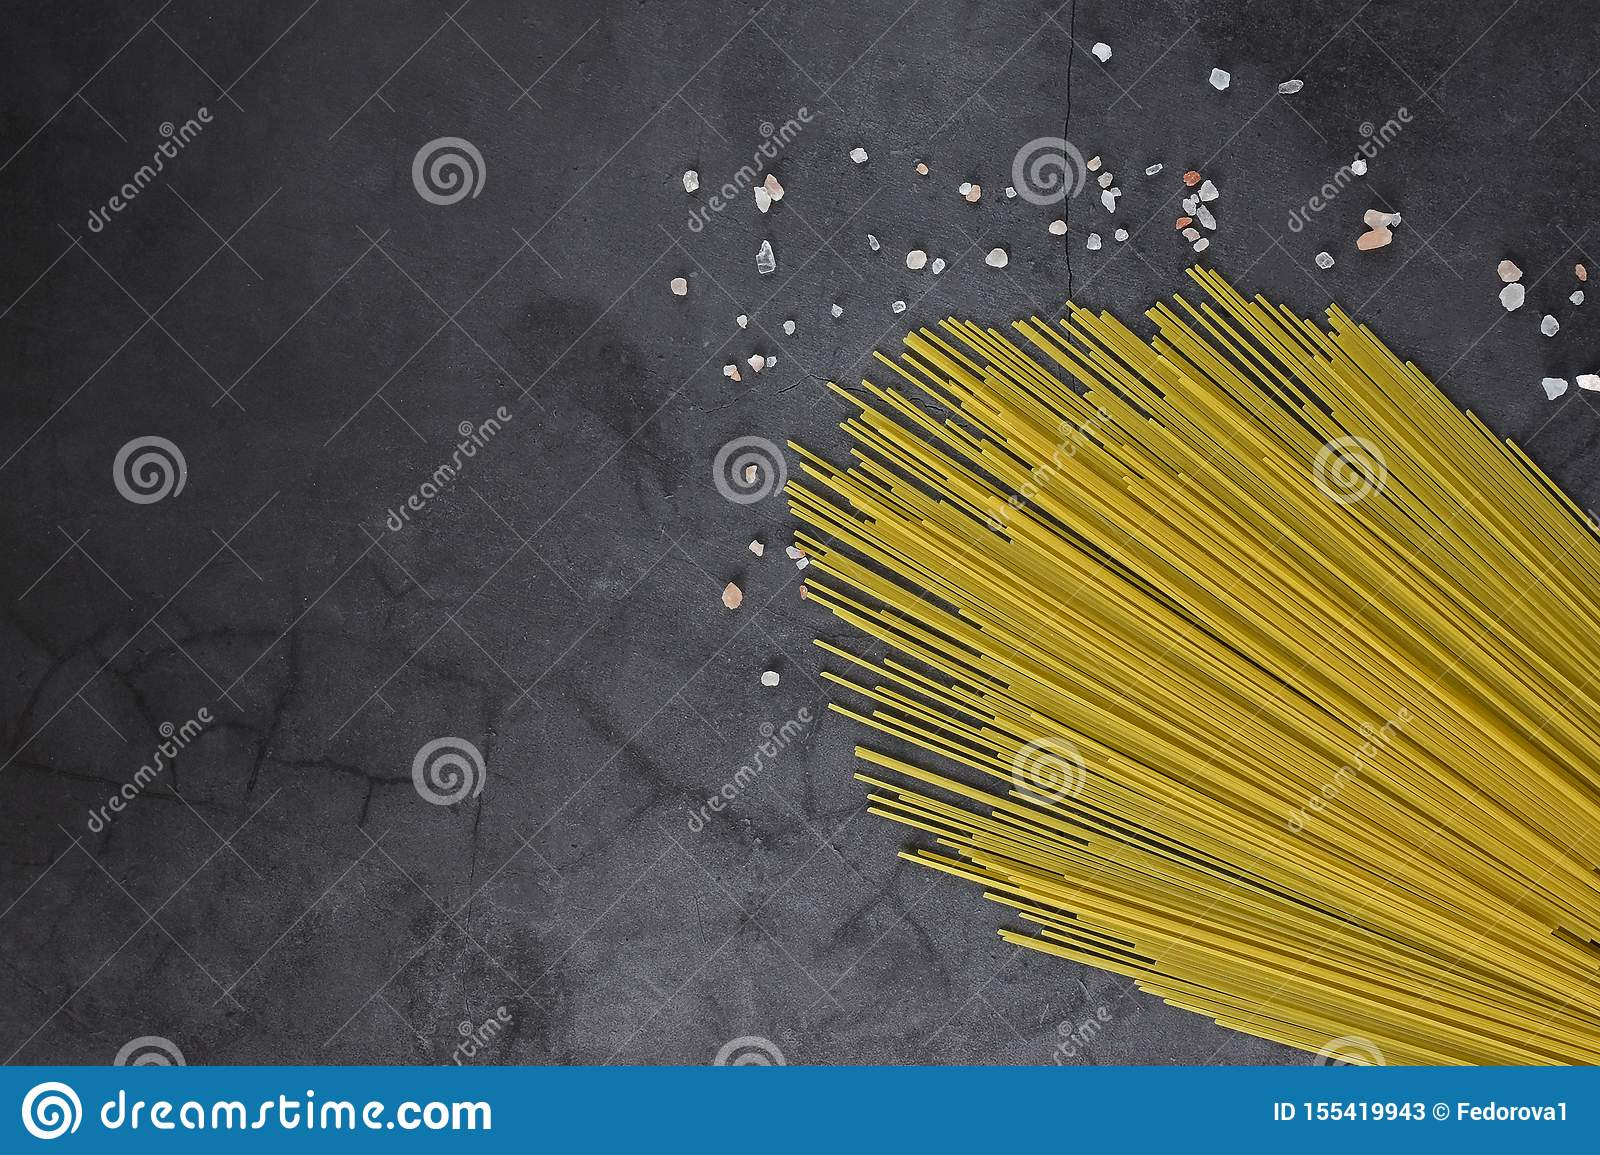 Thin threads of pasta on a neutral gray background